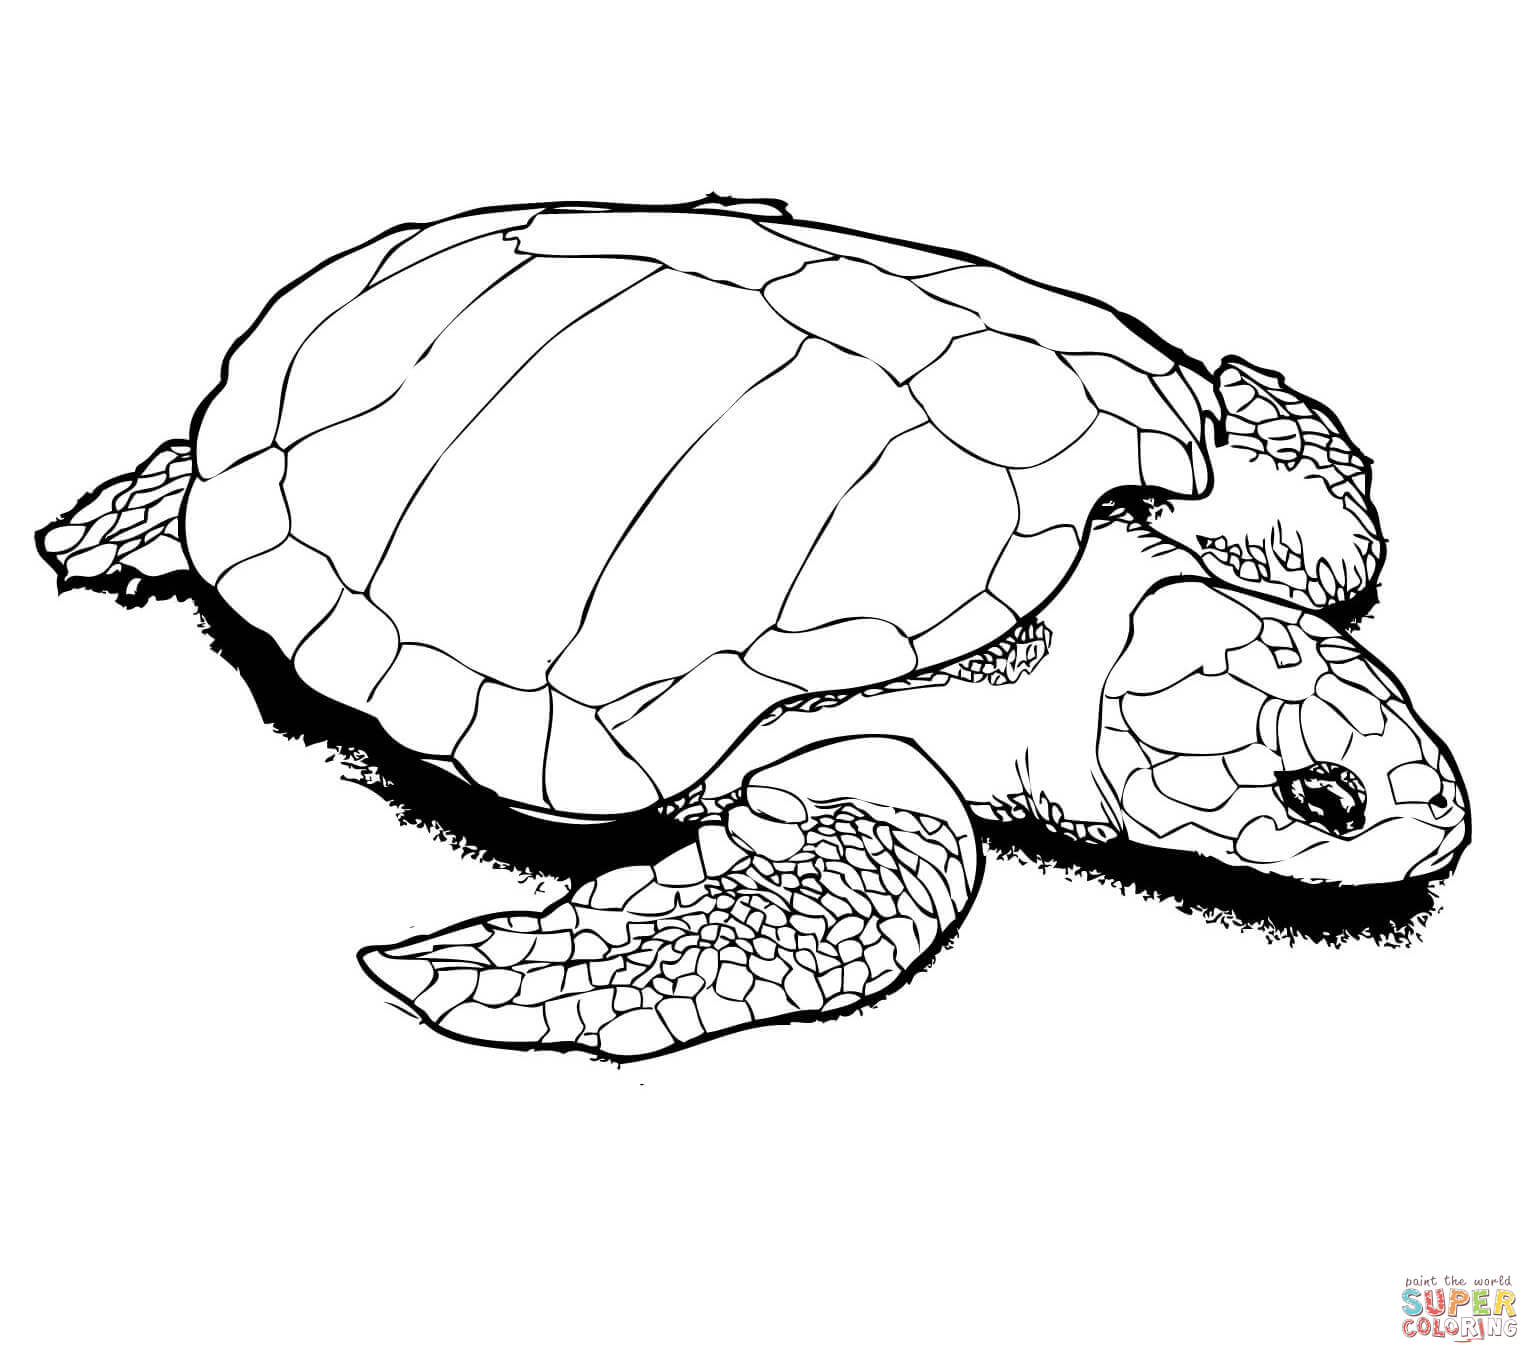 turtle coloring images snapping turtle coloring pages at getcoloringscom free images turtle coloring